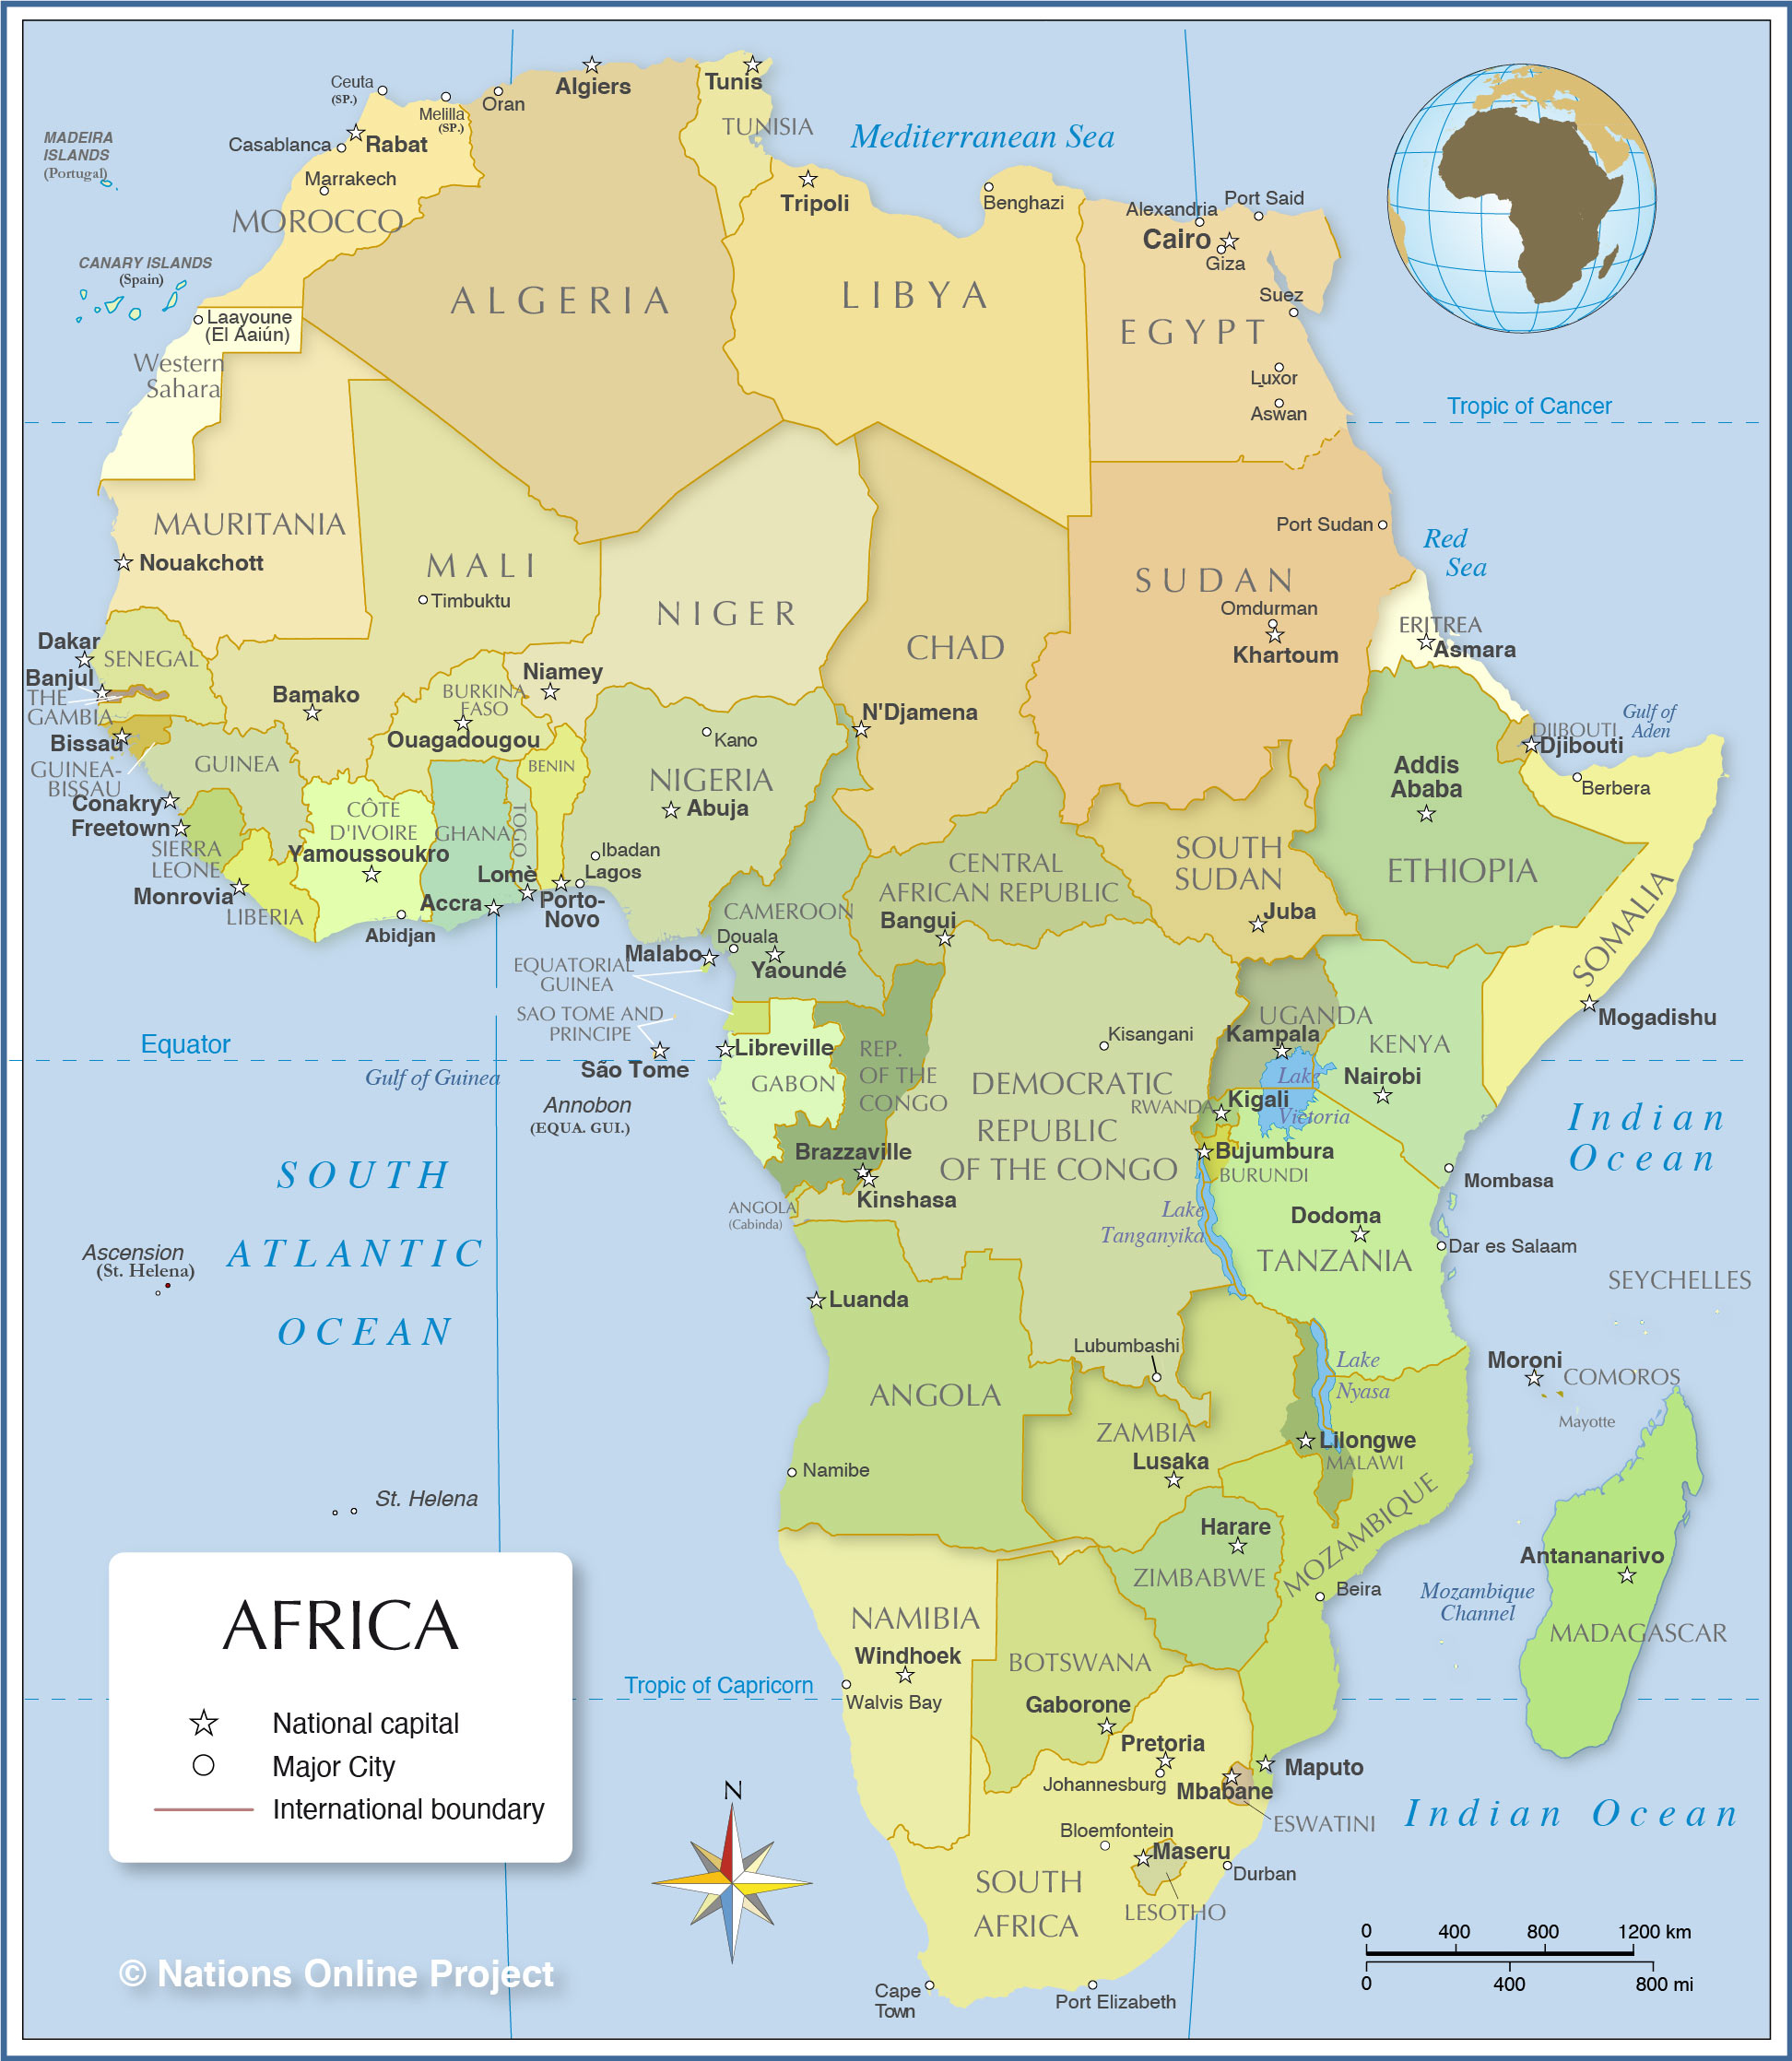 Capital Cities of Africa Nations Online Project